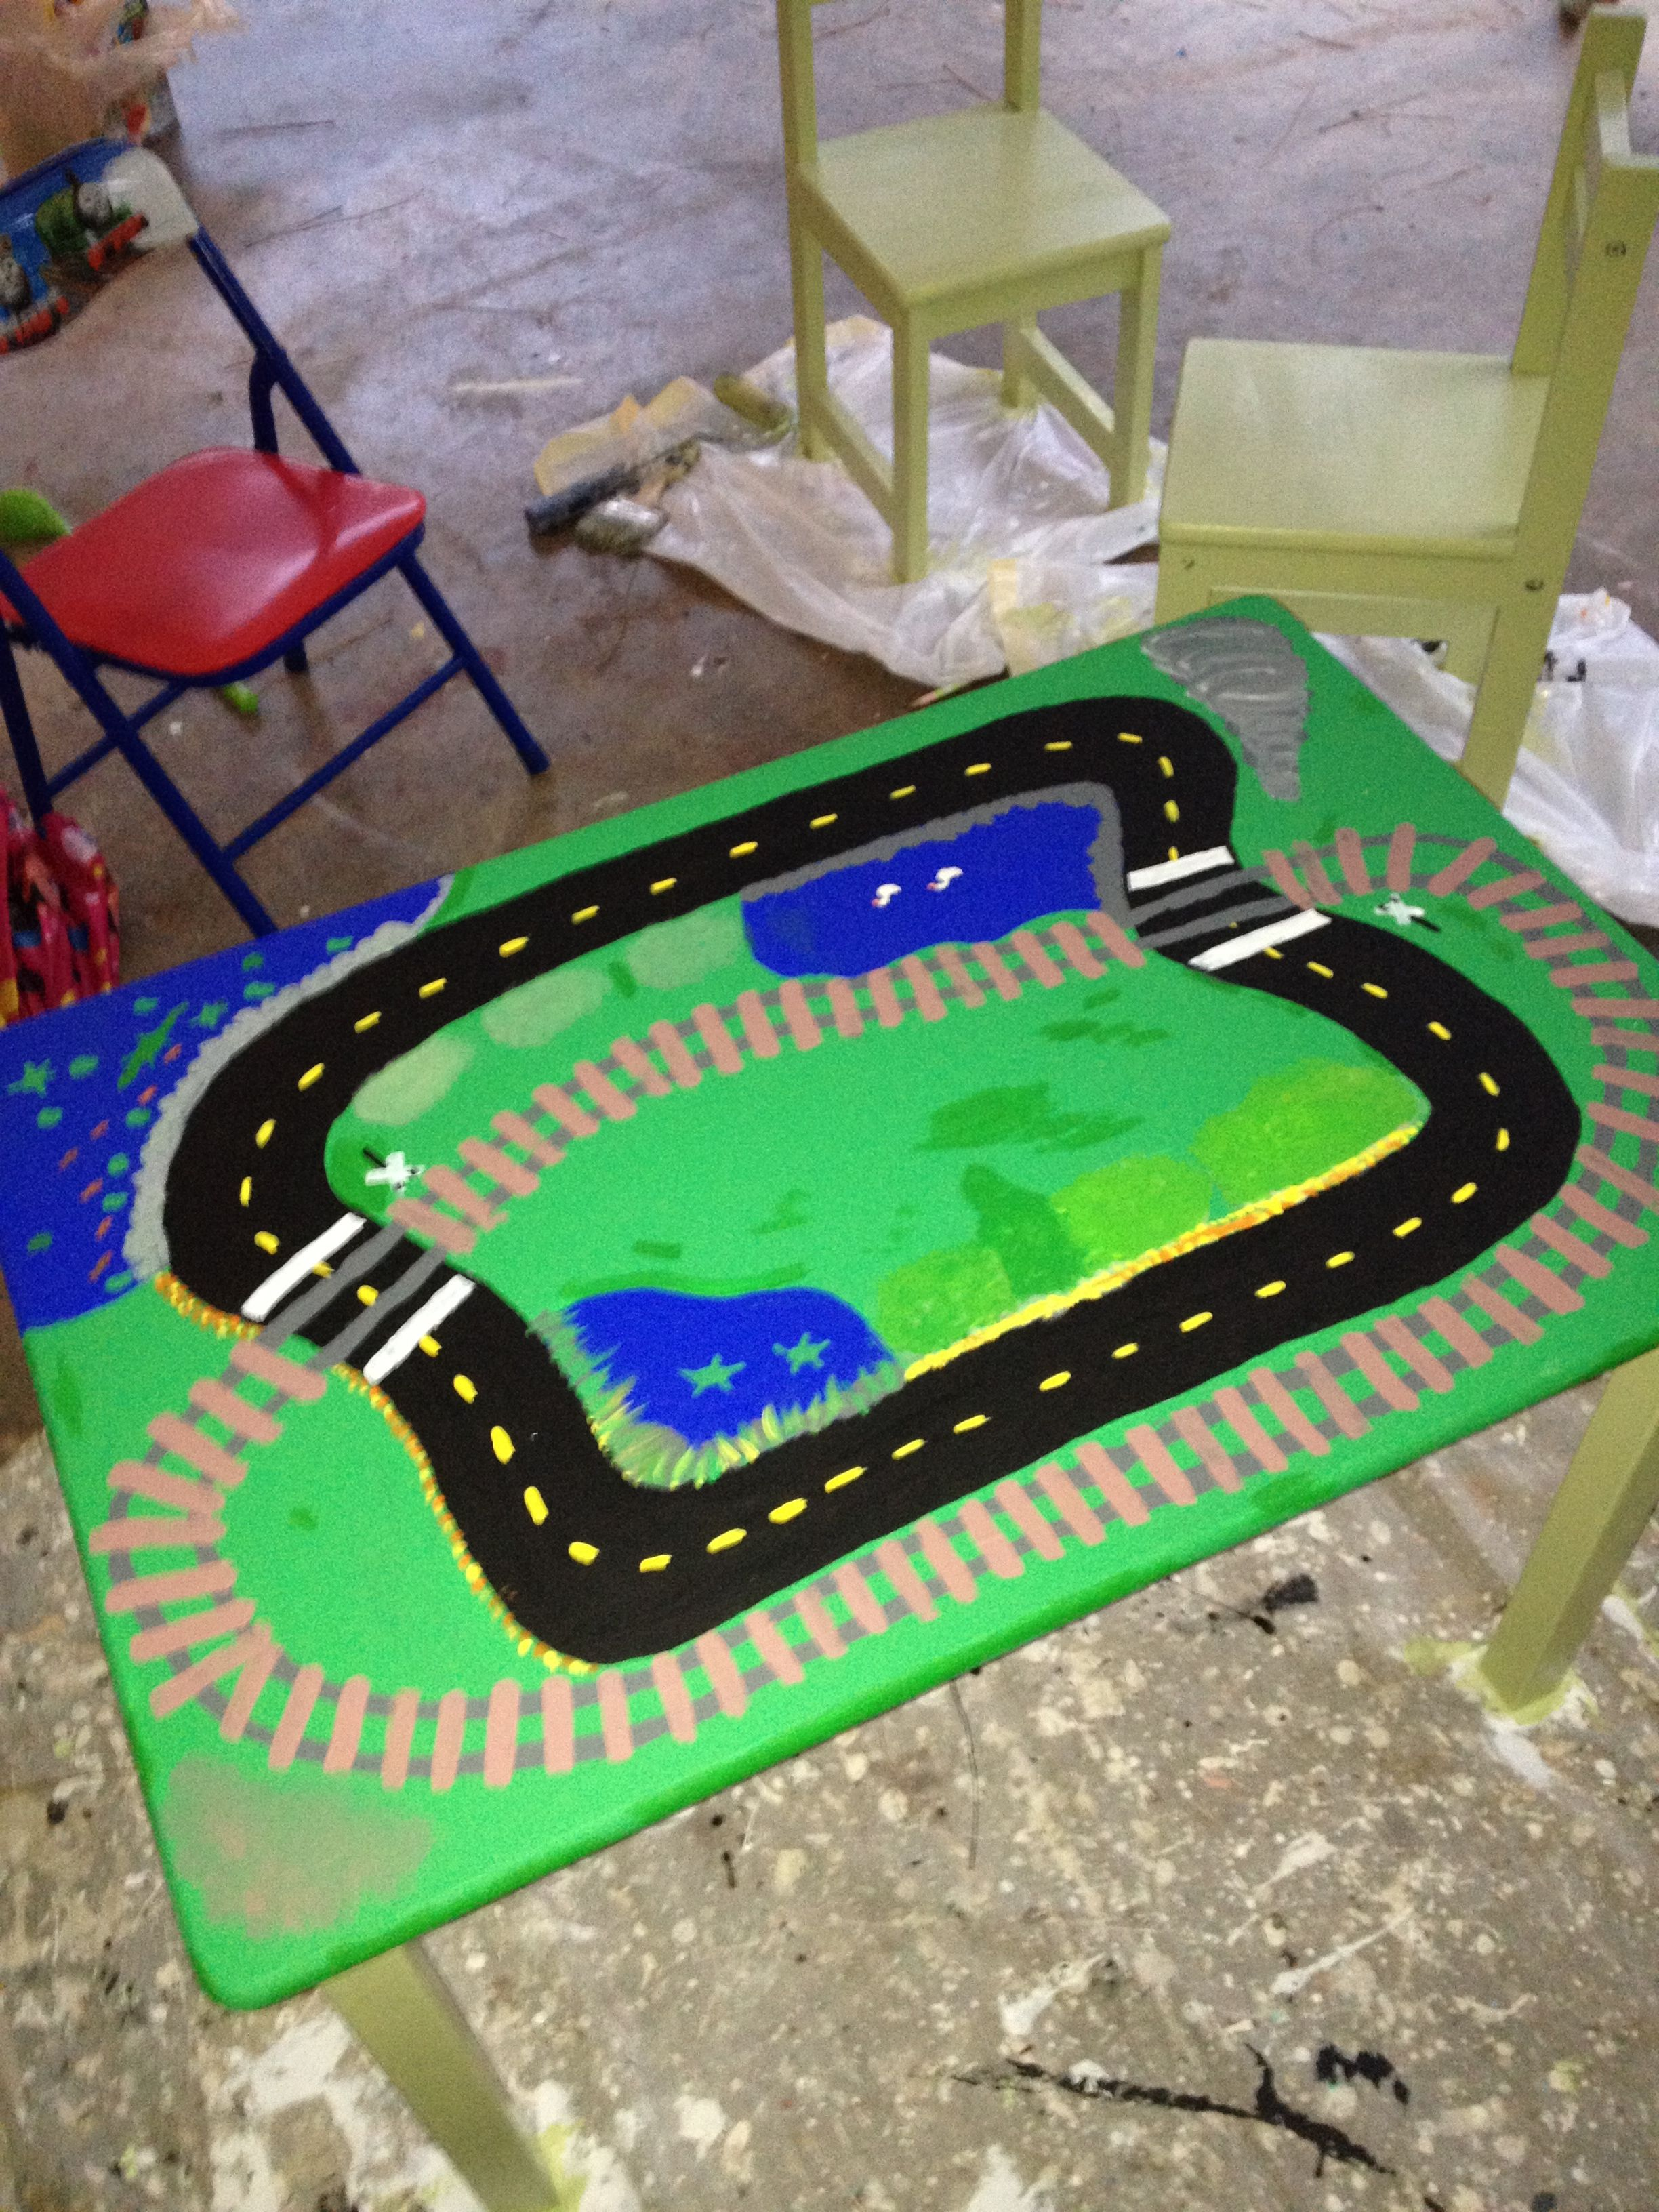 Moroccan Rugs DIY painted car and train track table